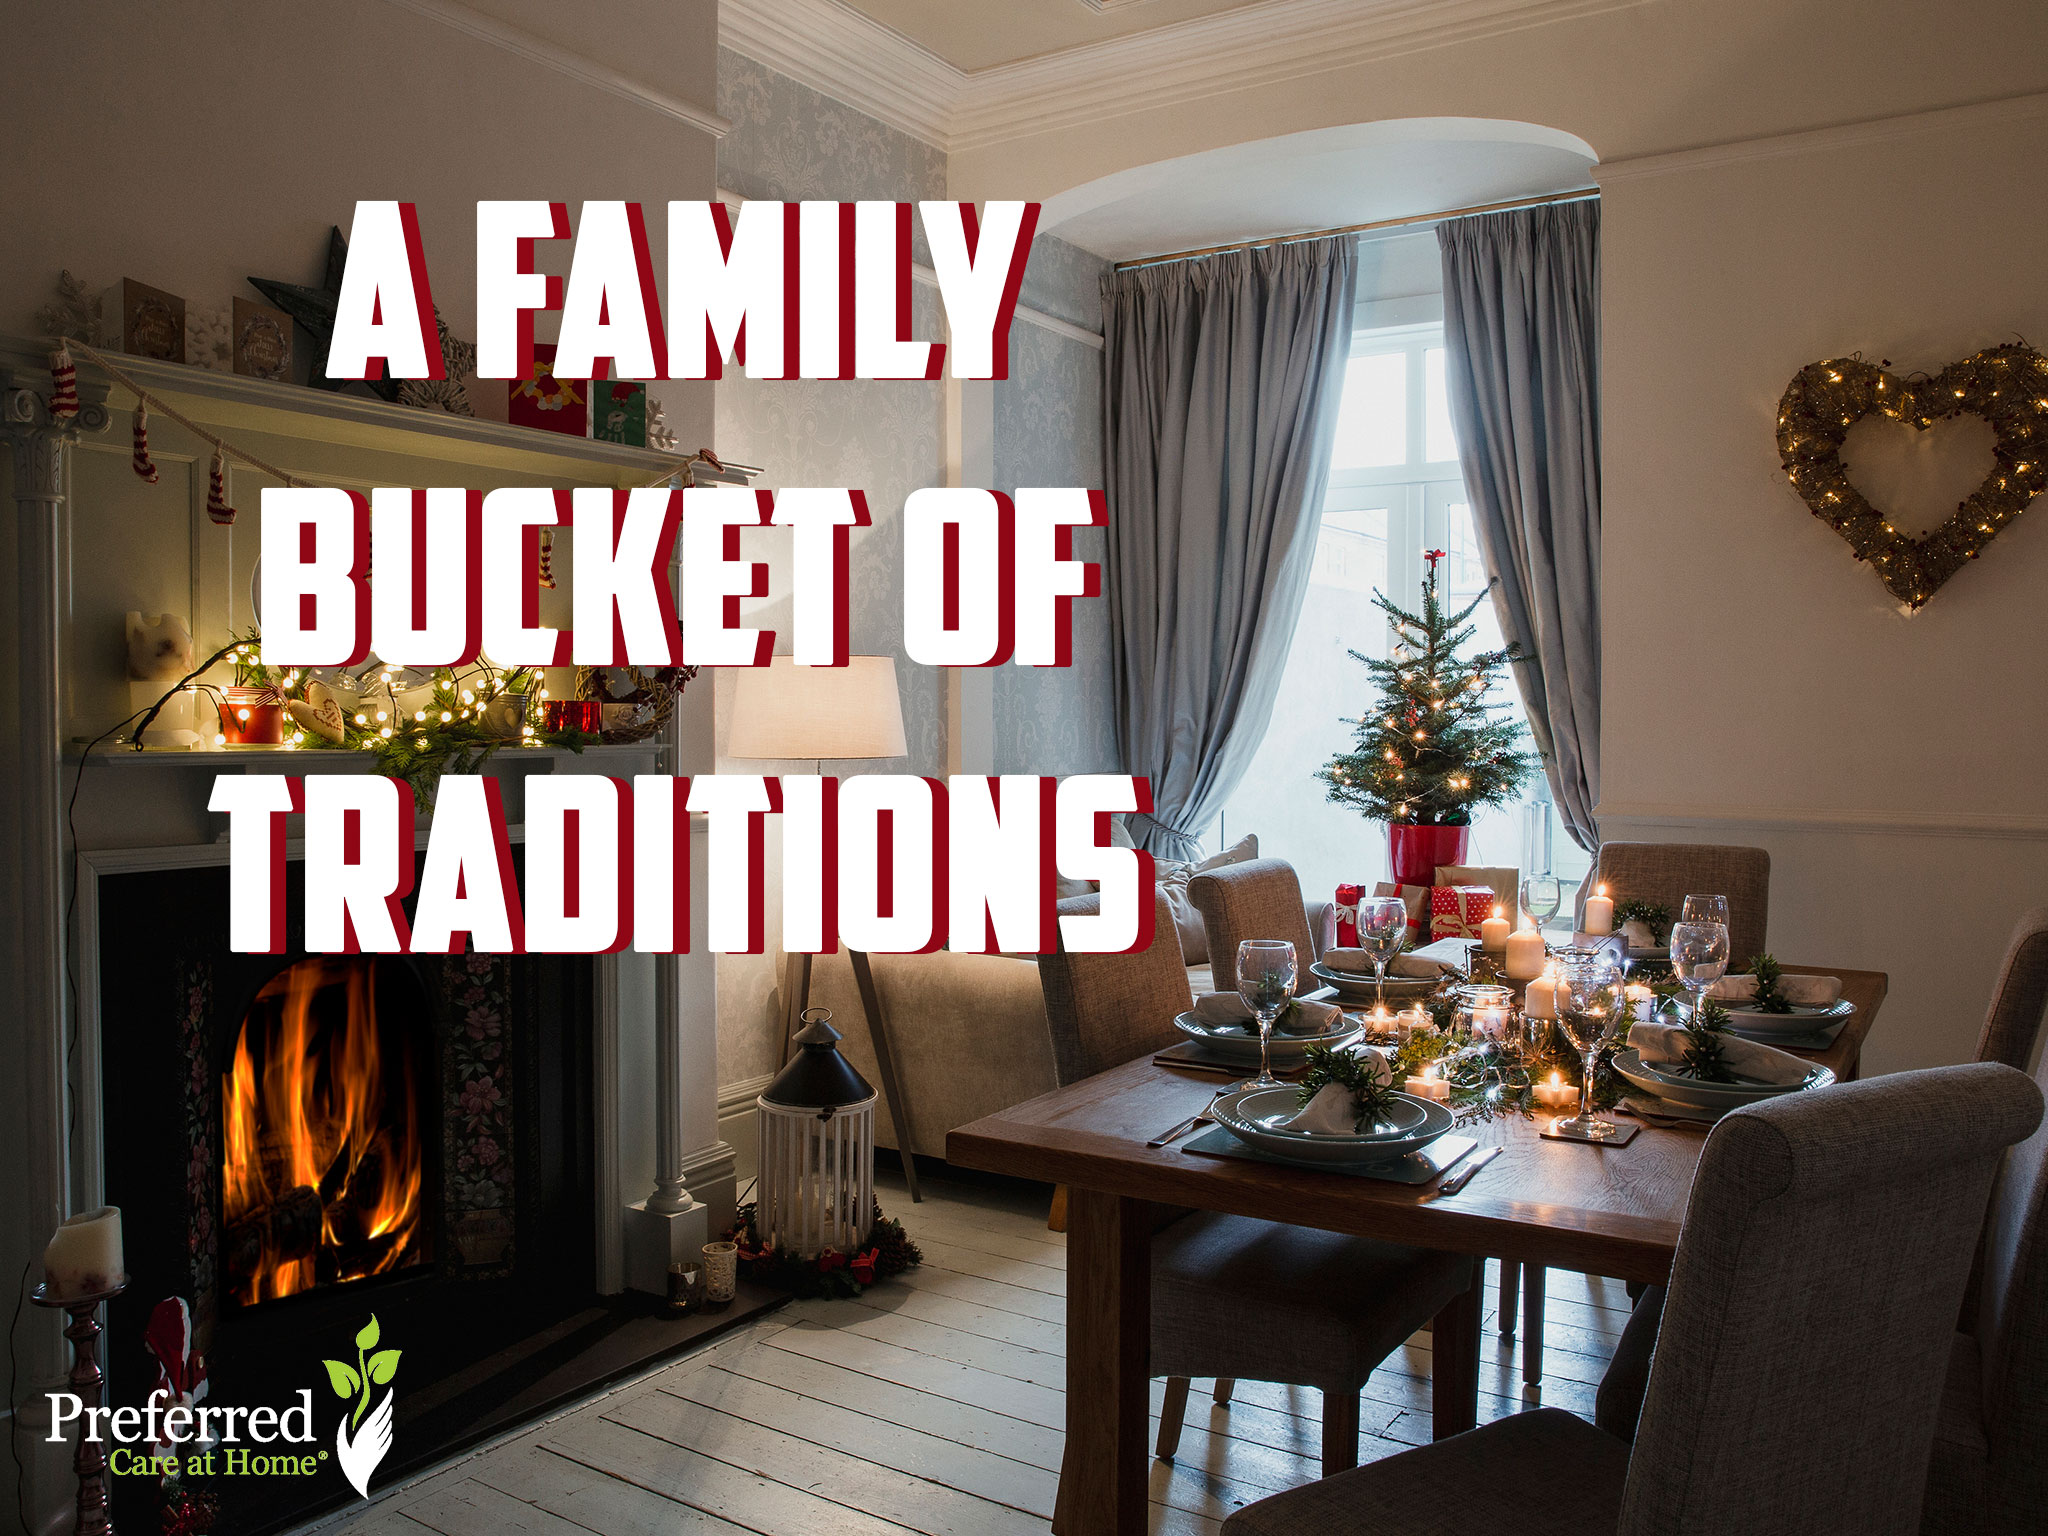 A Family Bucket of Traditions